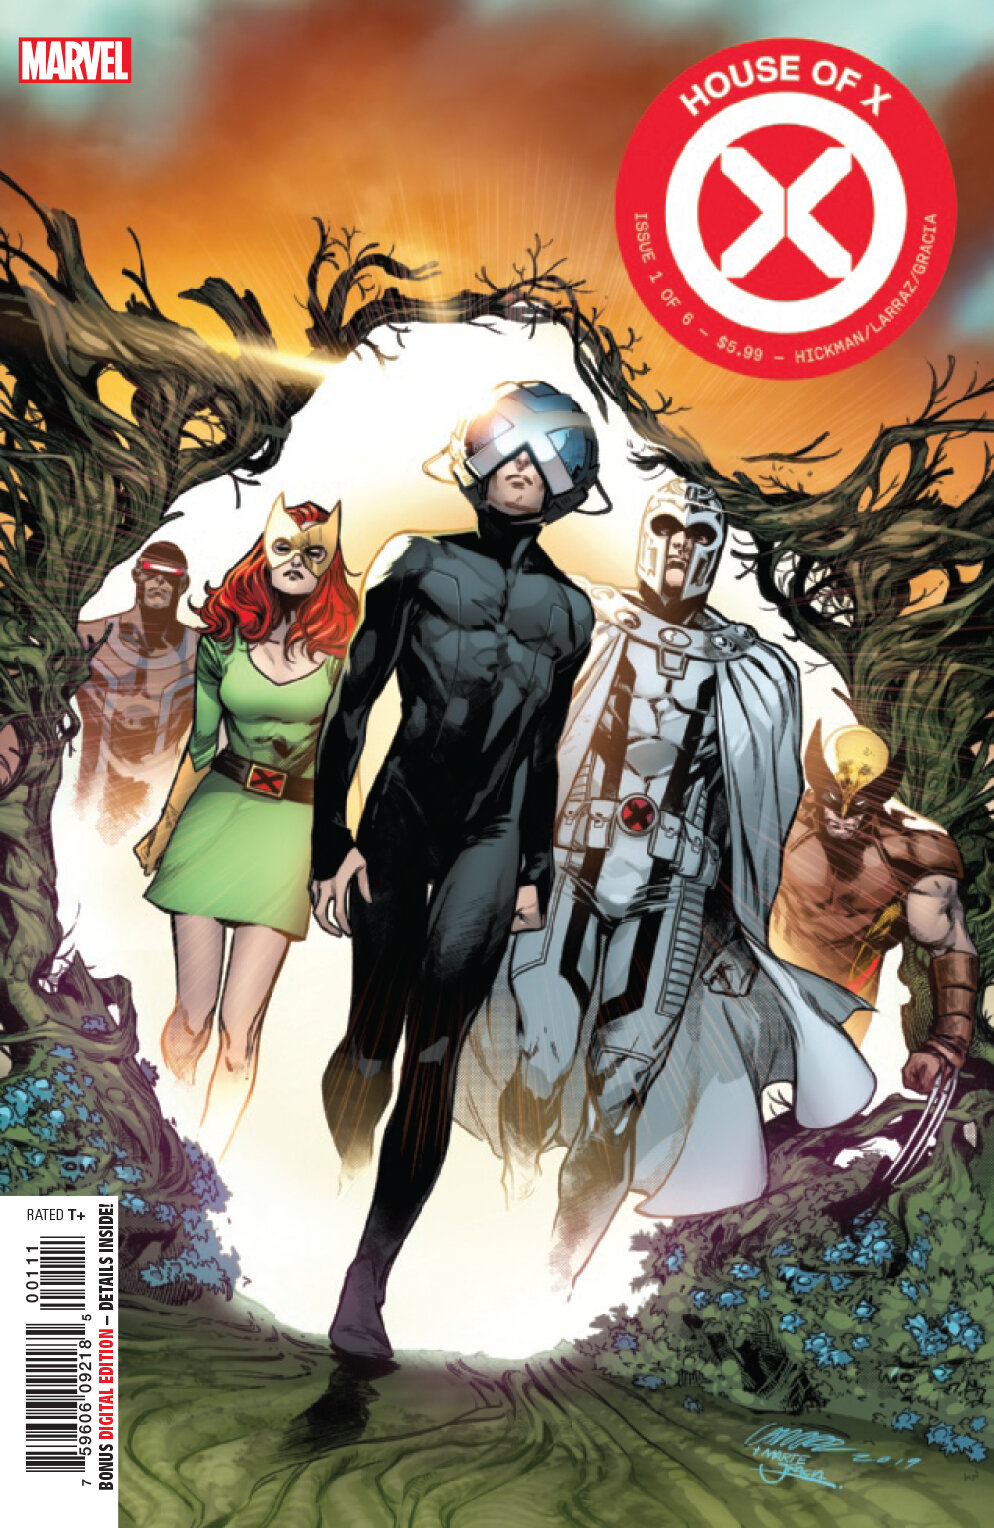 House of X #1.